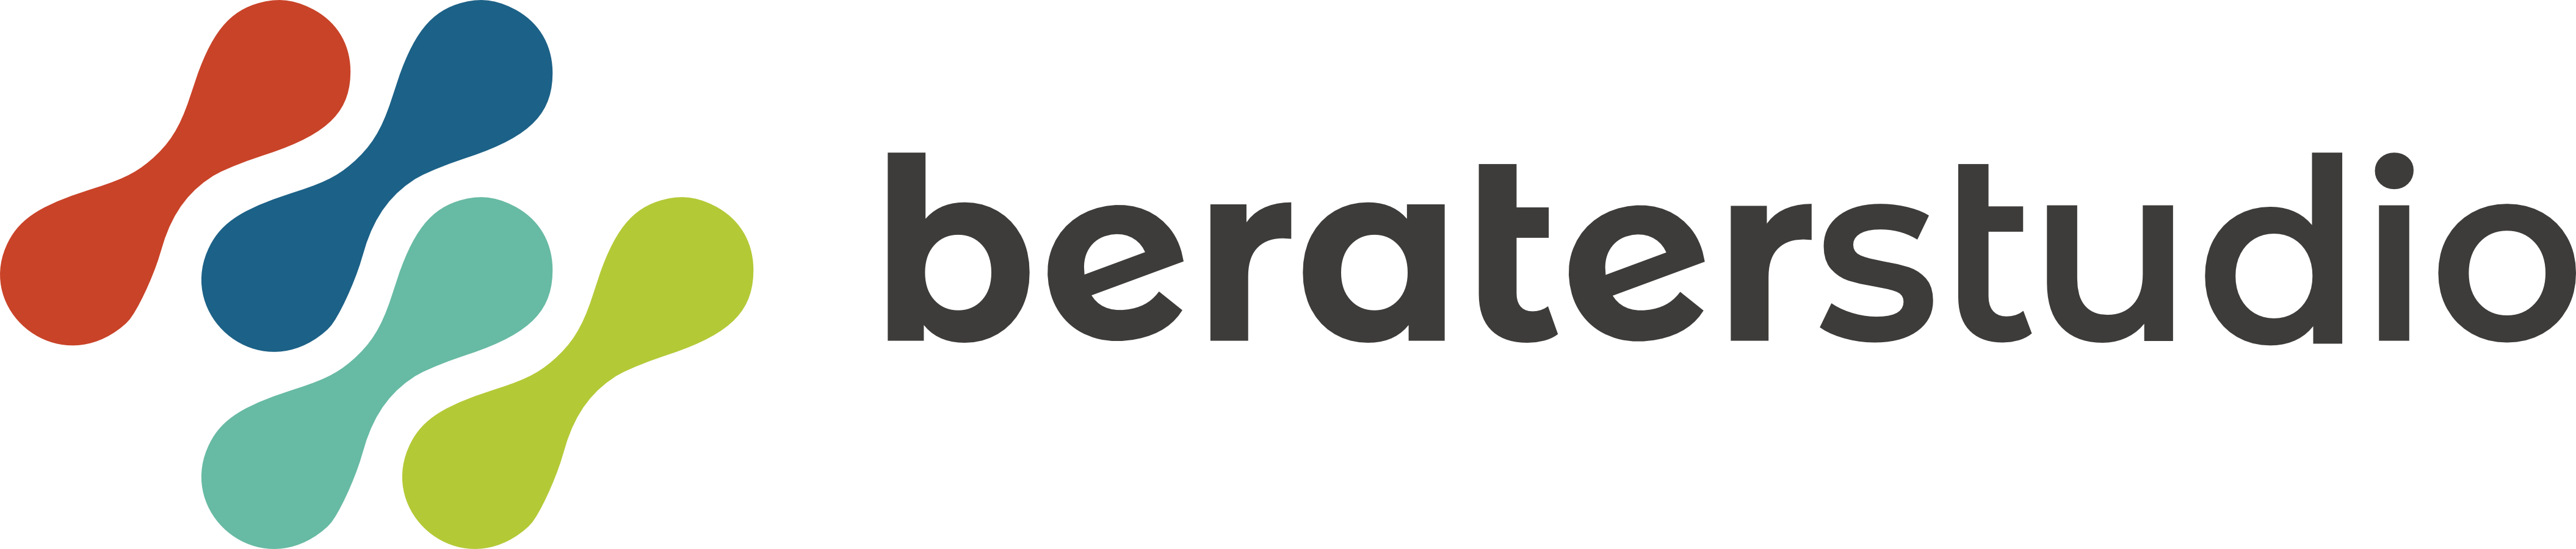 Beraterstudio Logo